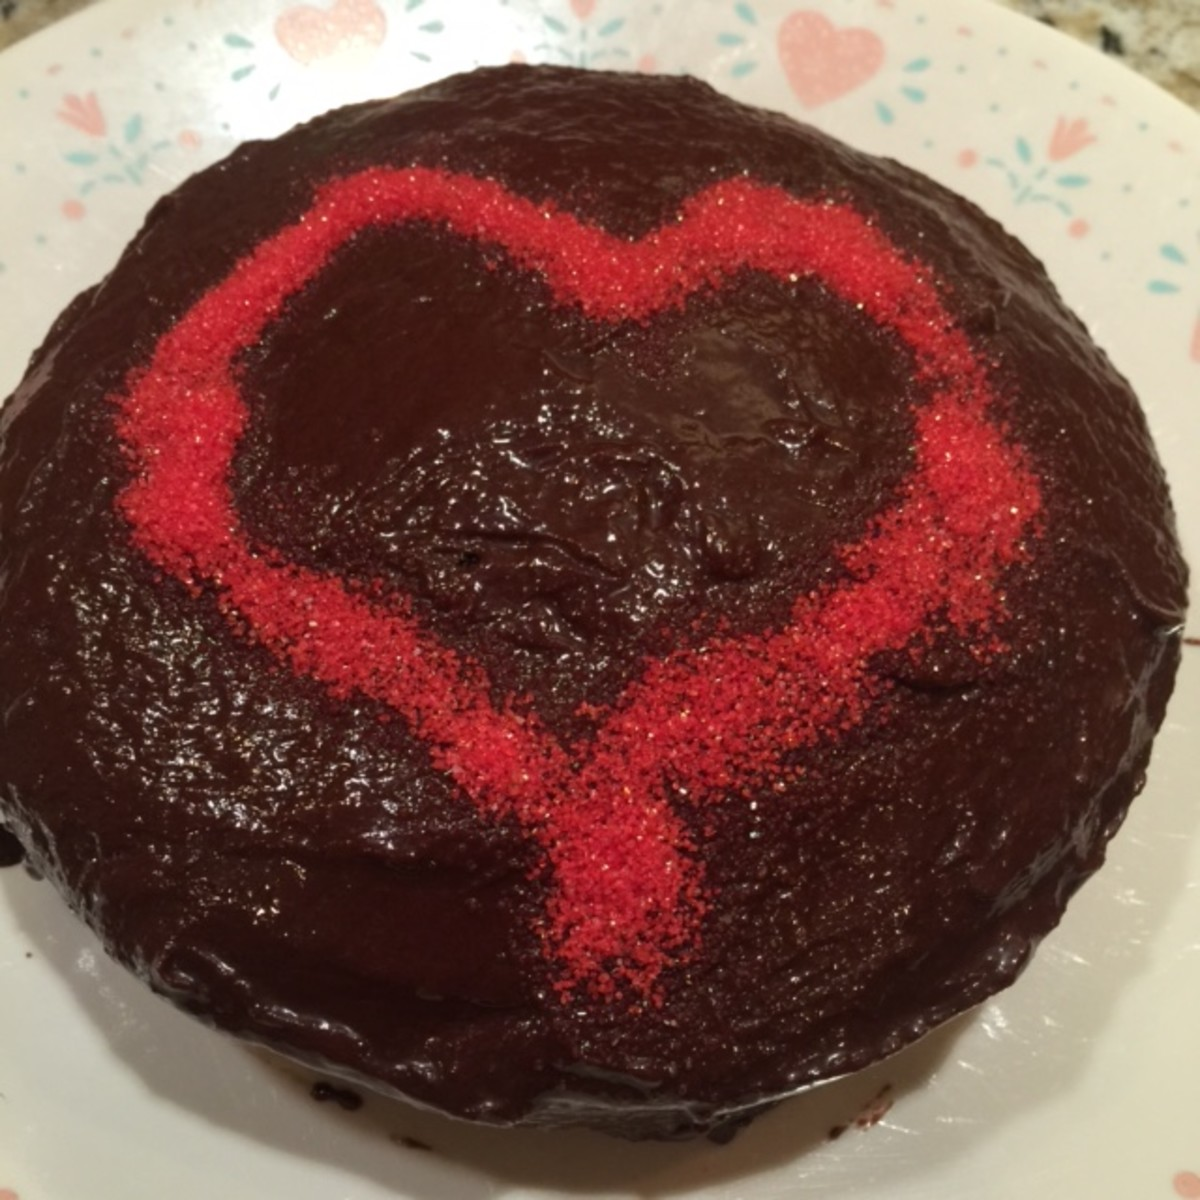 The Finished Cake, with some added red sprinkles for Valentine's Day!